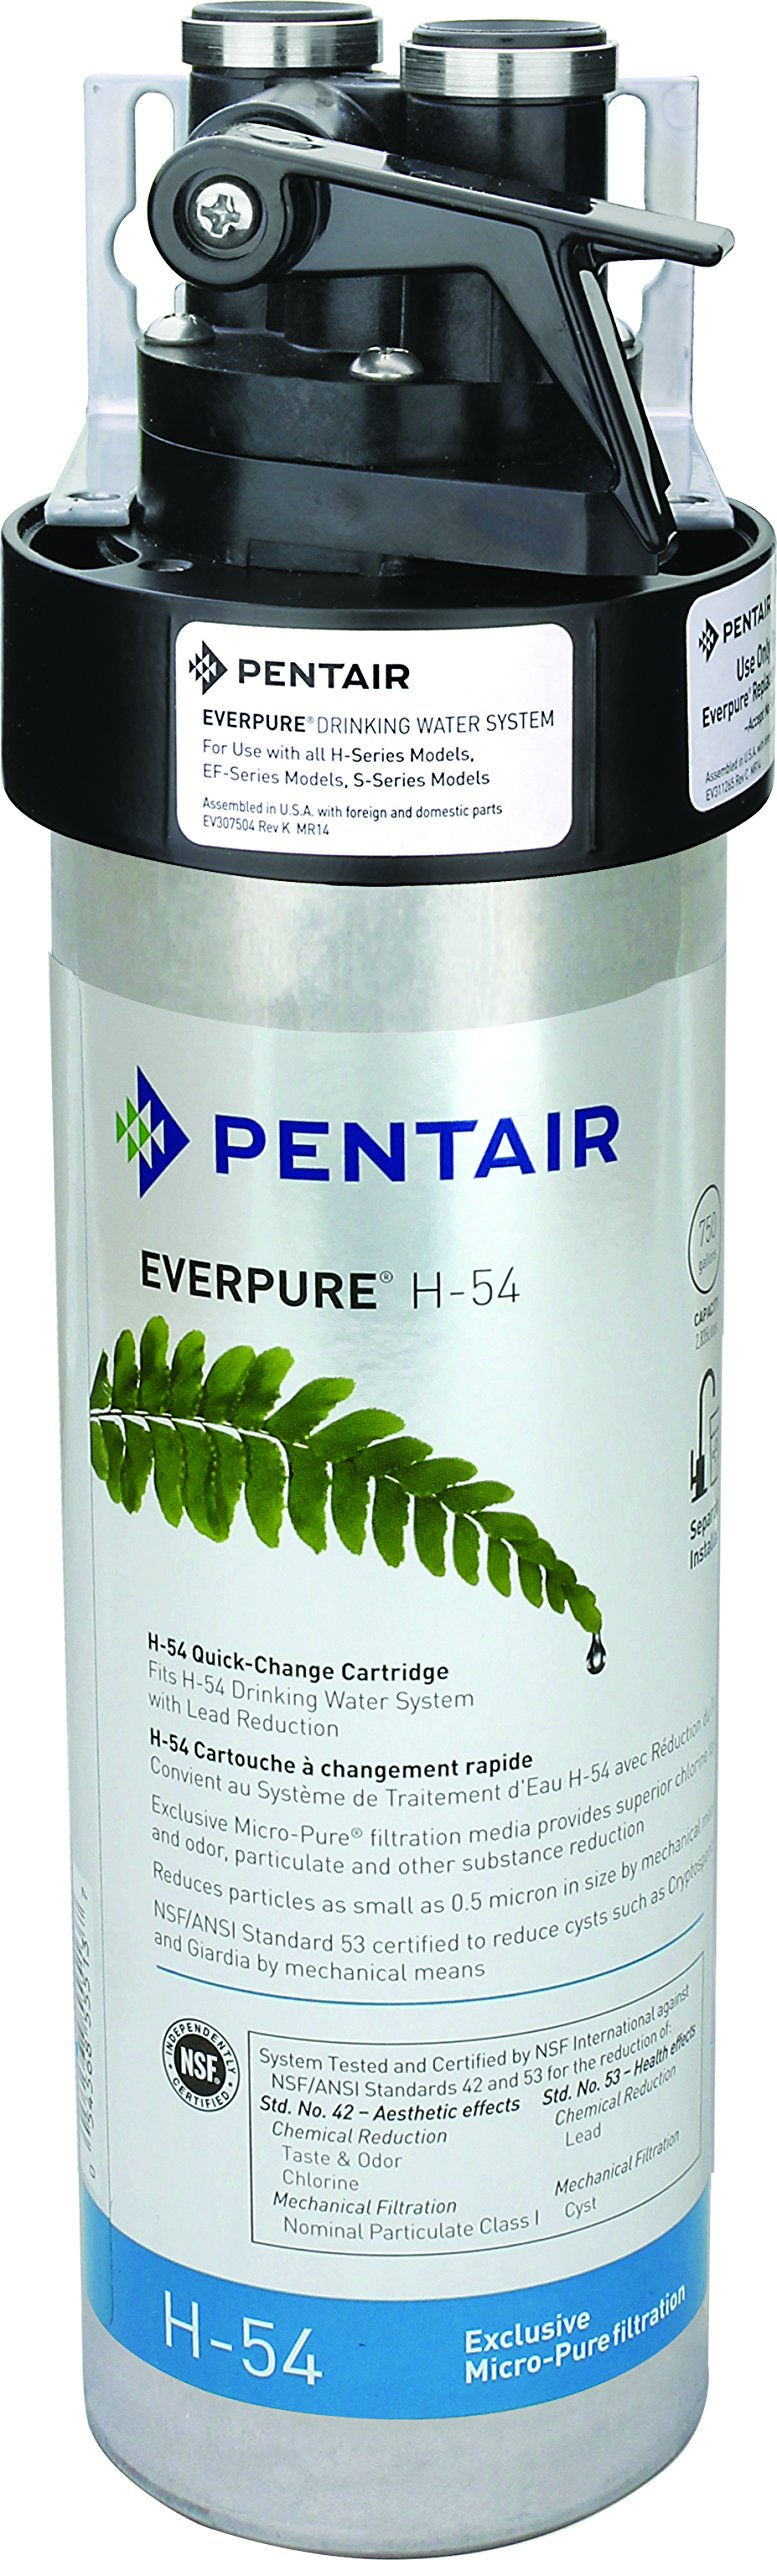 Everpure H-54 Drinking Water Filter System (EV9252-67). Quick Change Cartridge System. Commercial Grade Water Filtration and Lead Reduction